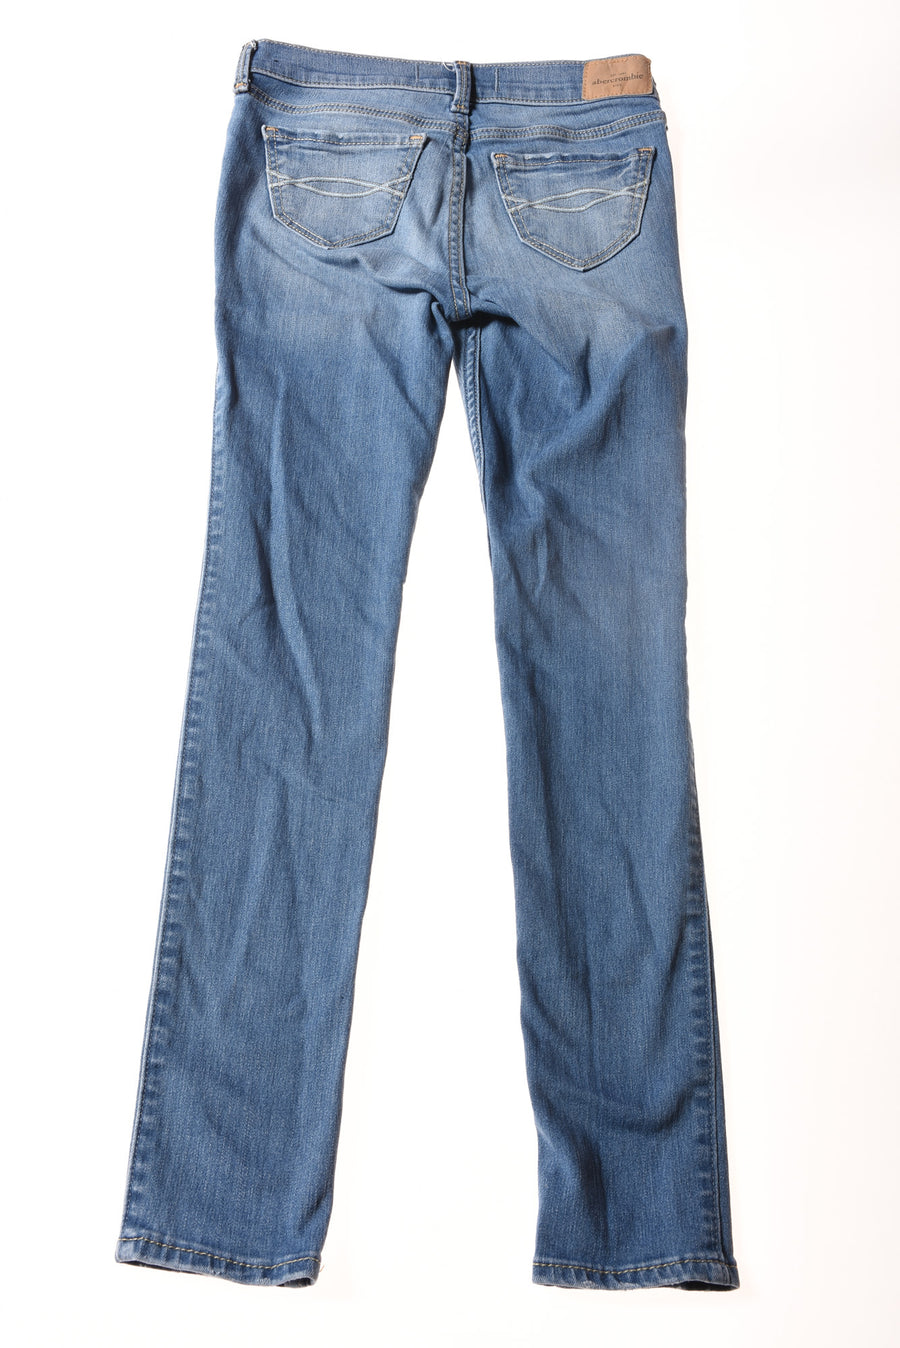 Girl's Jeans By abercrombie kids